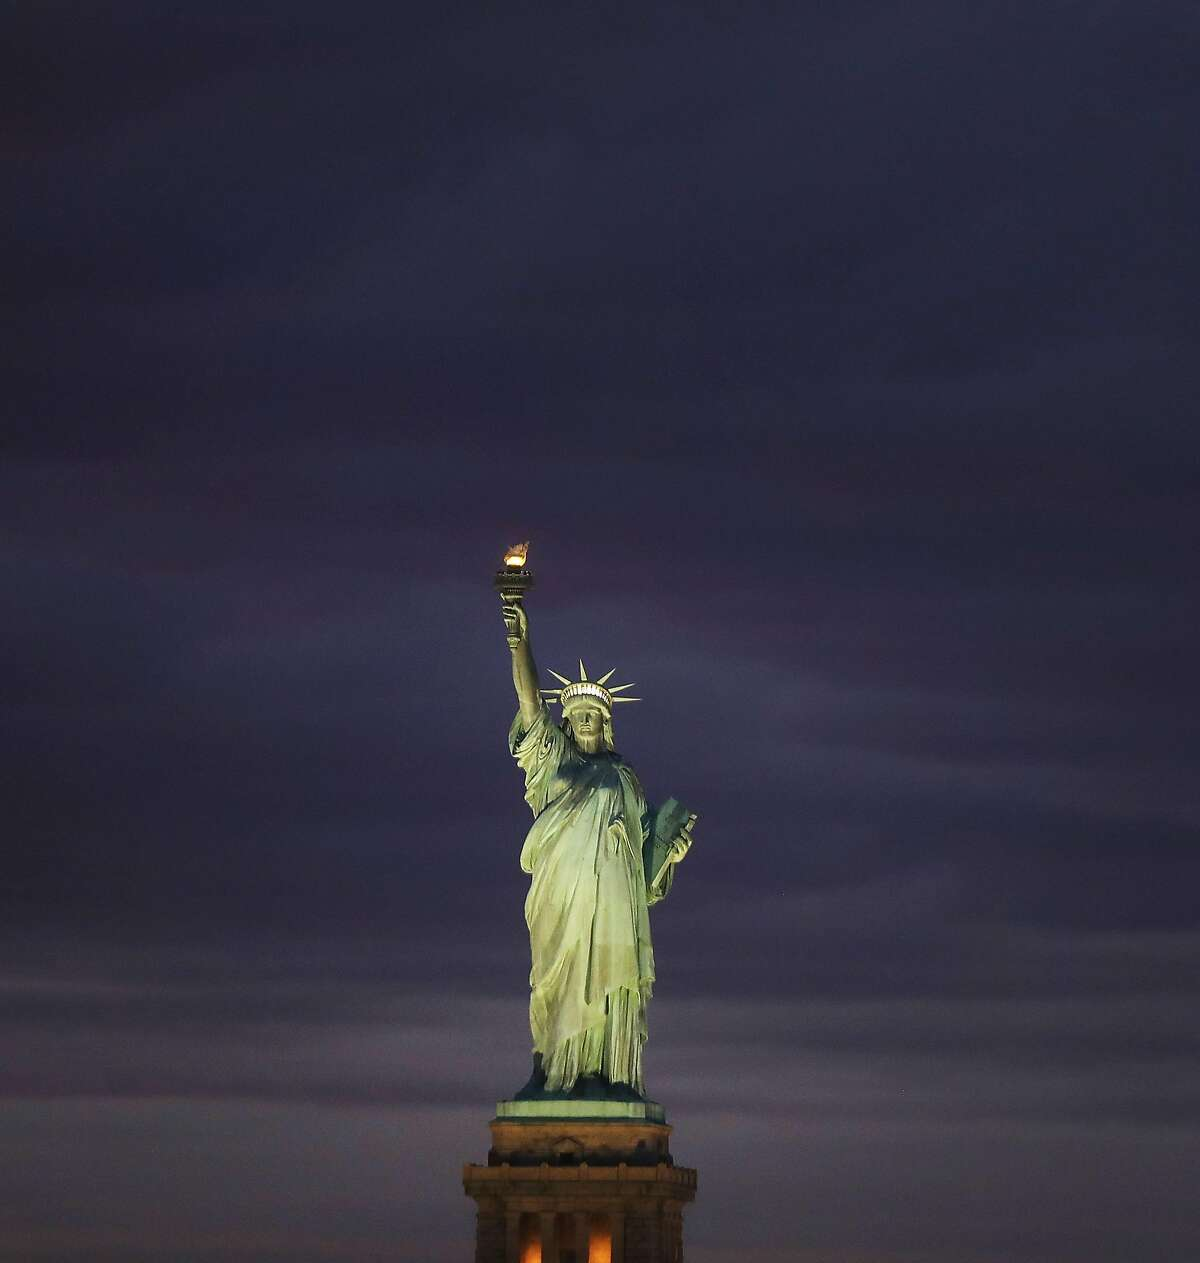 NEW YORK, NY - JANUARY 23: The Statue of Liberty stands in New York Harbor at sunset on January 23, 2018 in New York City. The national landmark only briefly closed due to the government shutdown which has temporarily been resolved. (Photo by Spencer Platt/Getty Images)